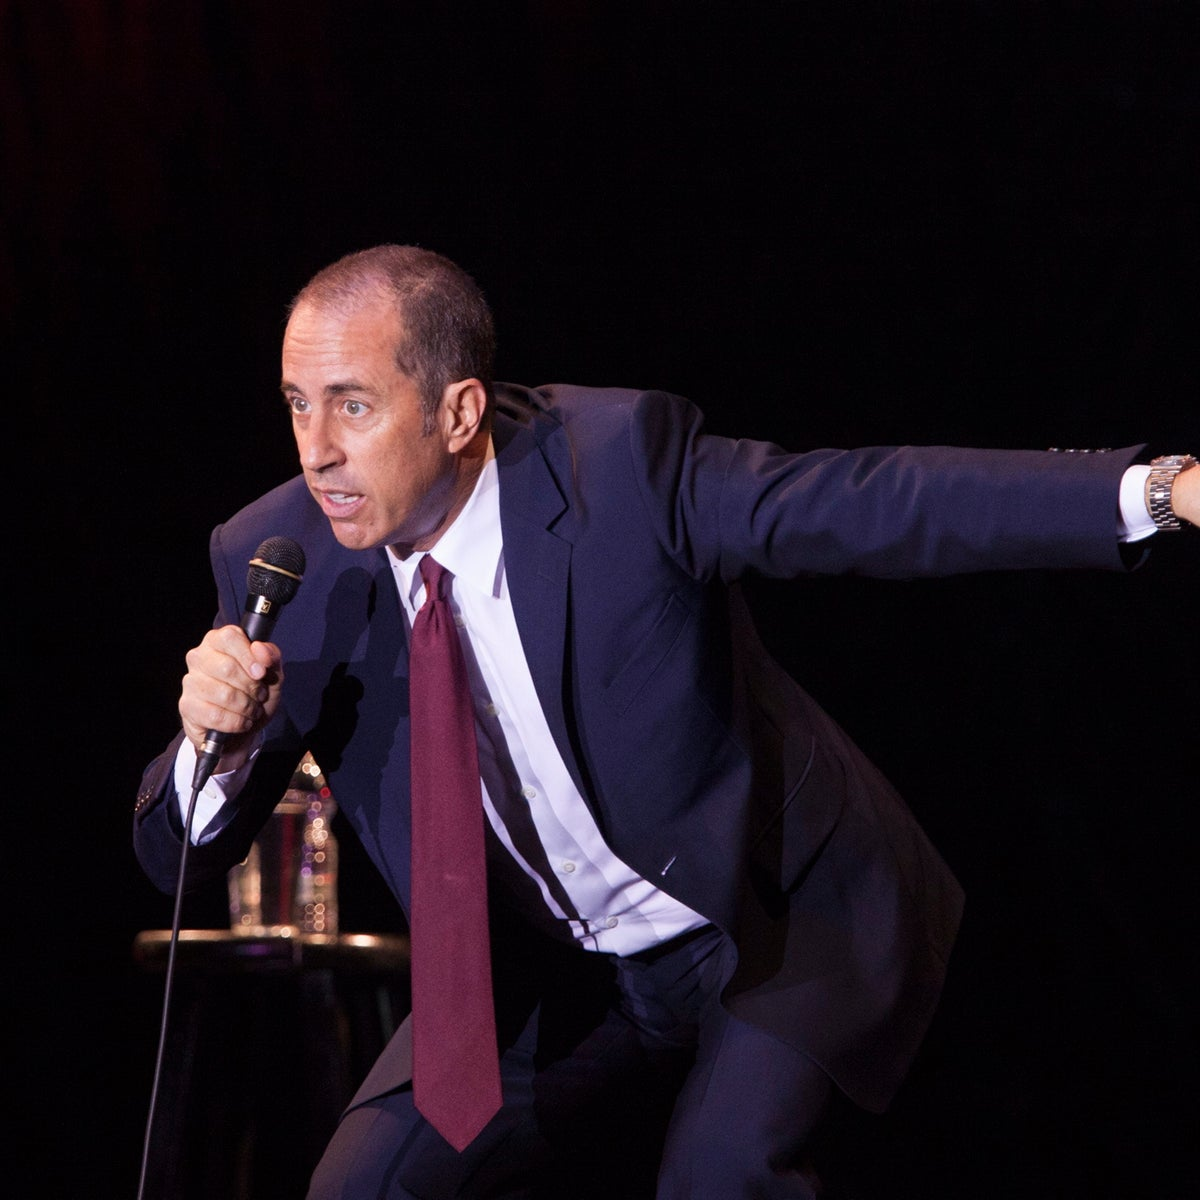 Jerry Seinfeld, American star comedian, performs at Menora Stadium in Tel Aviv, Israel, Saturday, Dec. 19, 2015.